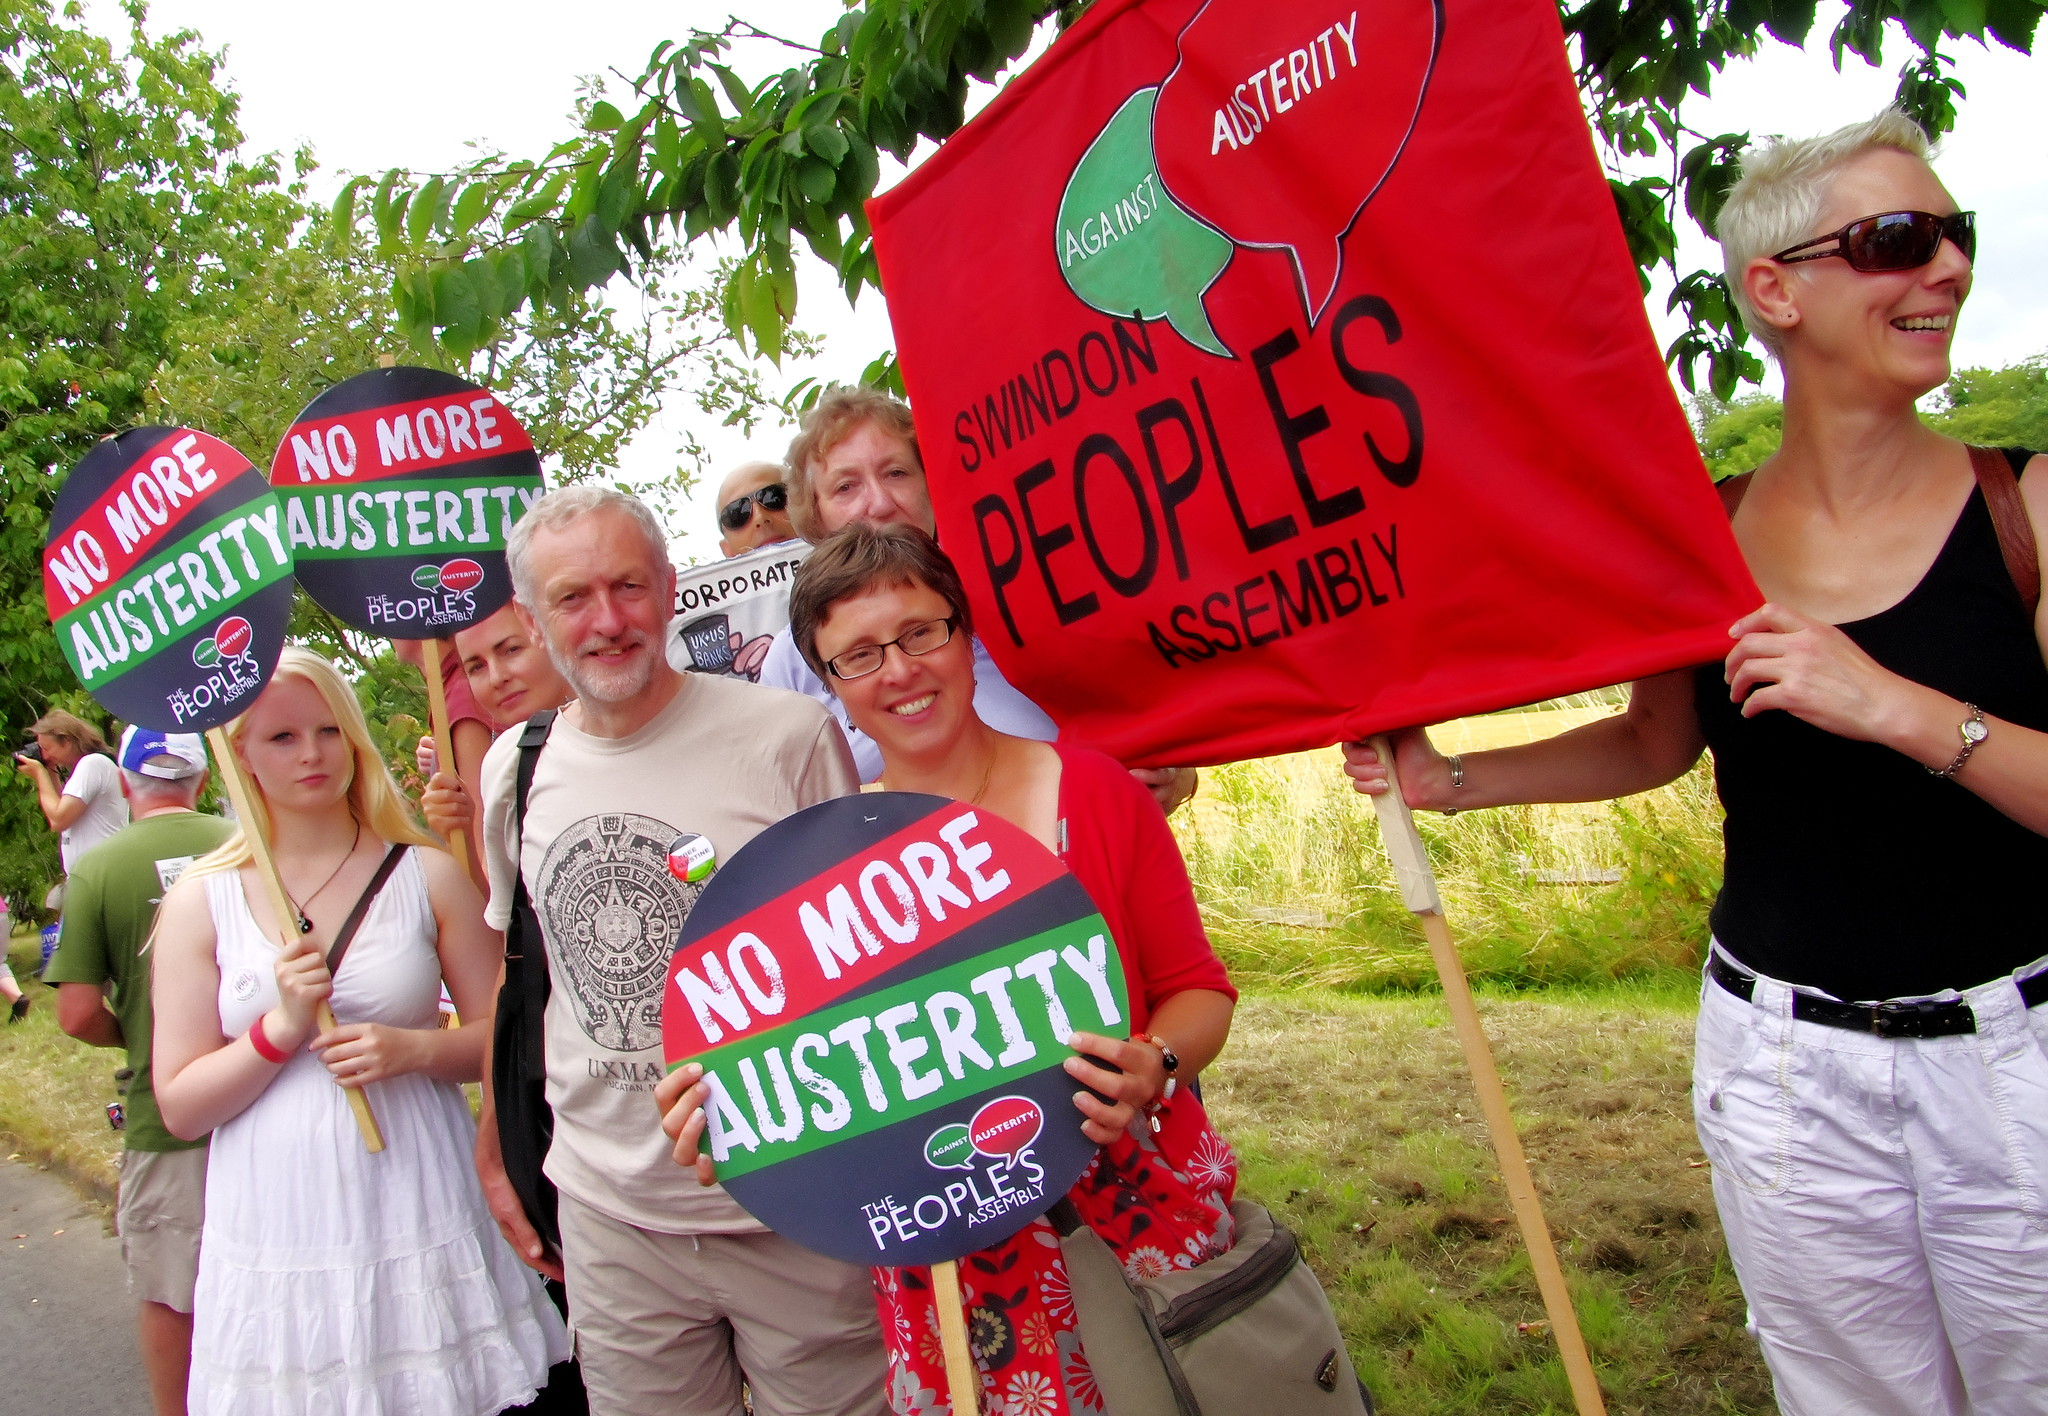 Jeremy Corbyn MP Islington North with Dorset, Swindon, Bristol People's Assembly @TolpuddleFestival March 20/07.2014